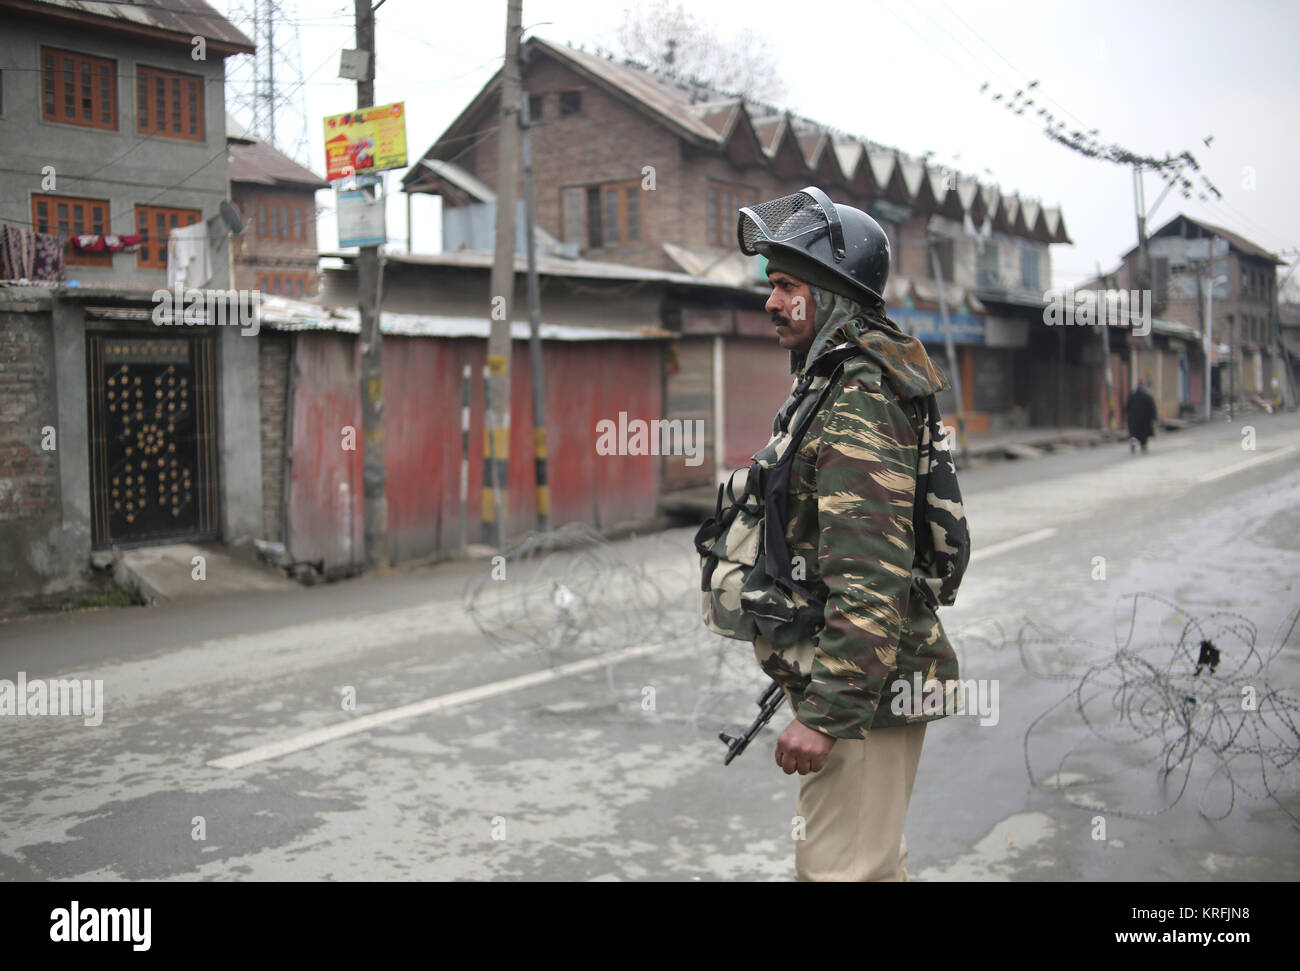 Srinagar, Kashmir. 20th Dec, 2017. An Indian paramilitary trooper stands guard on a road during restrictions in - Stock Image